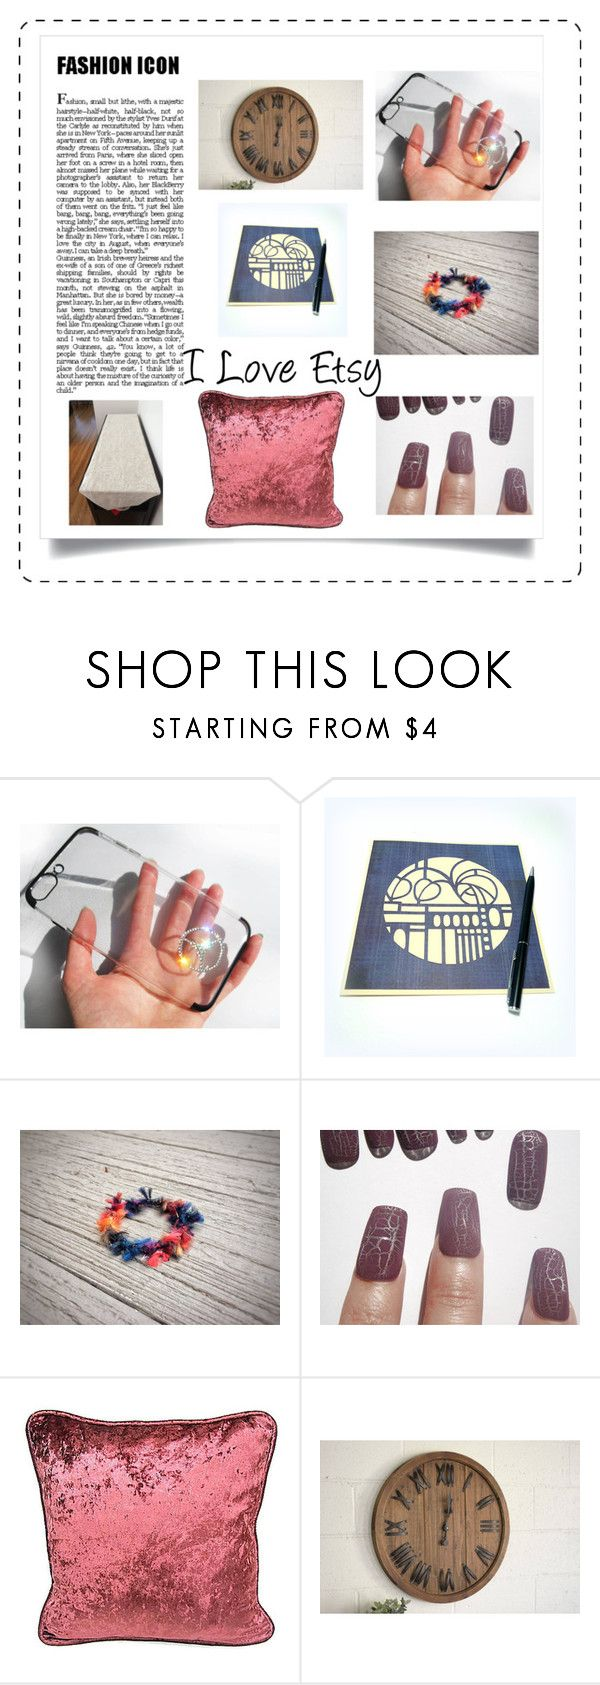 """""""Etsy gifts"""" by torijaink ❤ liked on Polyvore featuring interior, interiors, interior design, home, home decor, interior decorating, love, friends, etsy and fresh"""